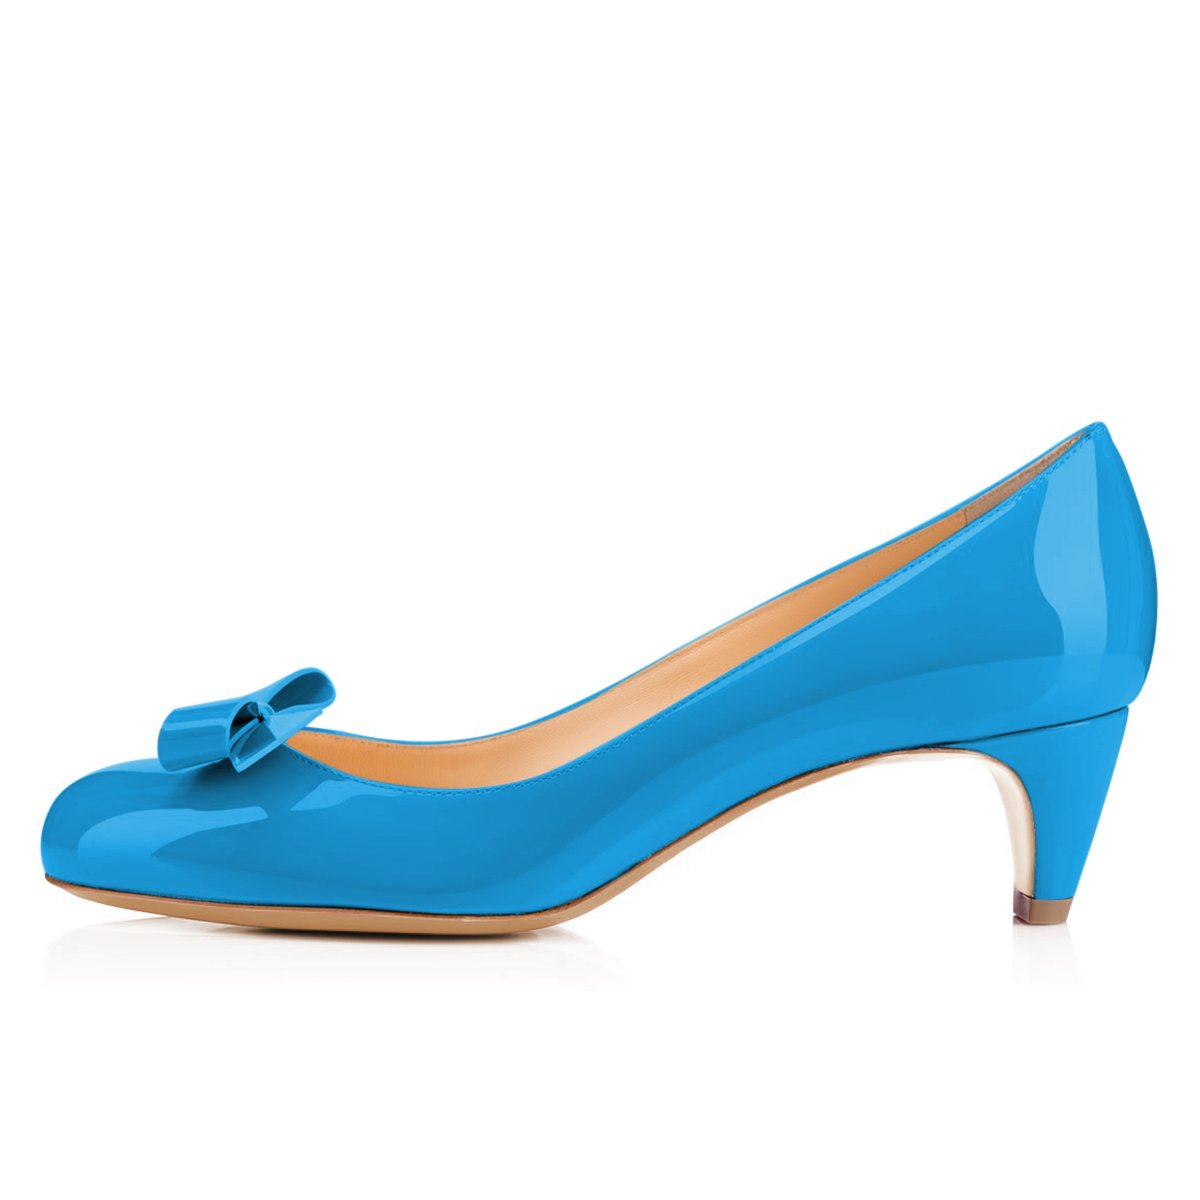 YDN Women Closed Round Toe Pumps Bowknot Low Heels Shoes with Bowknot Pumps for Work Office Ladies B07FXF17L3 14 M US|Blue 3605fb